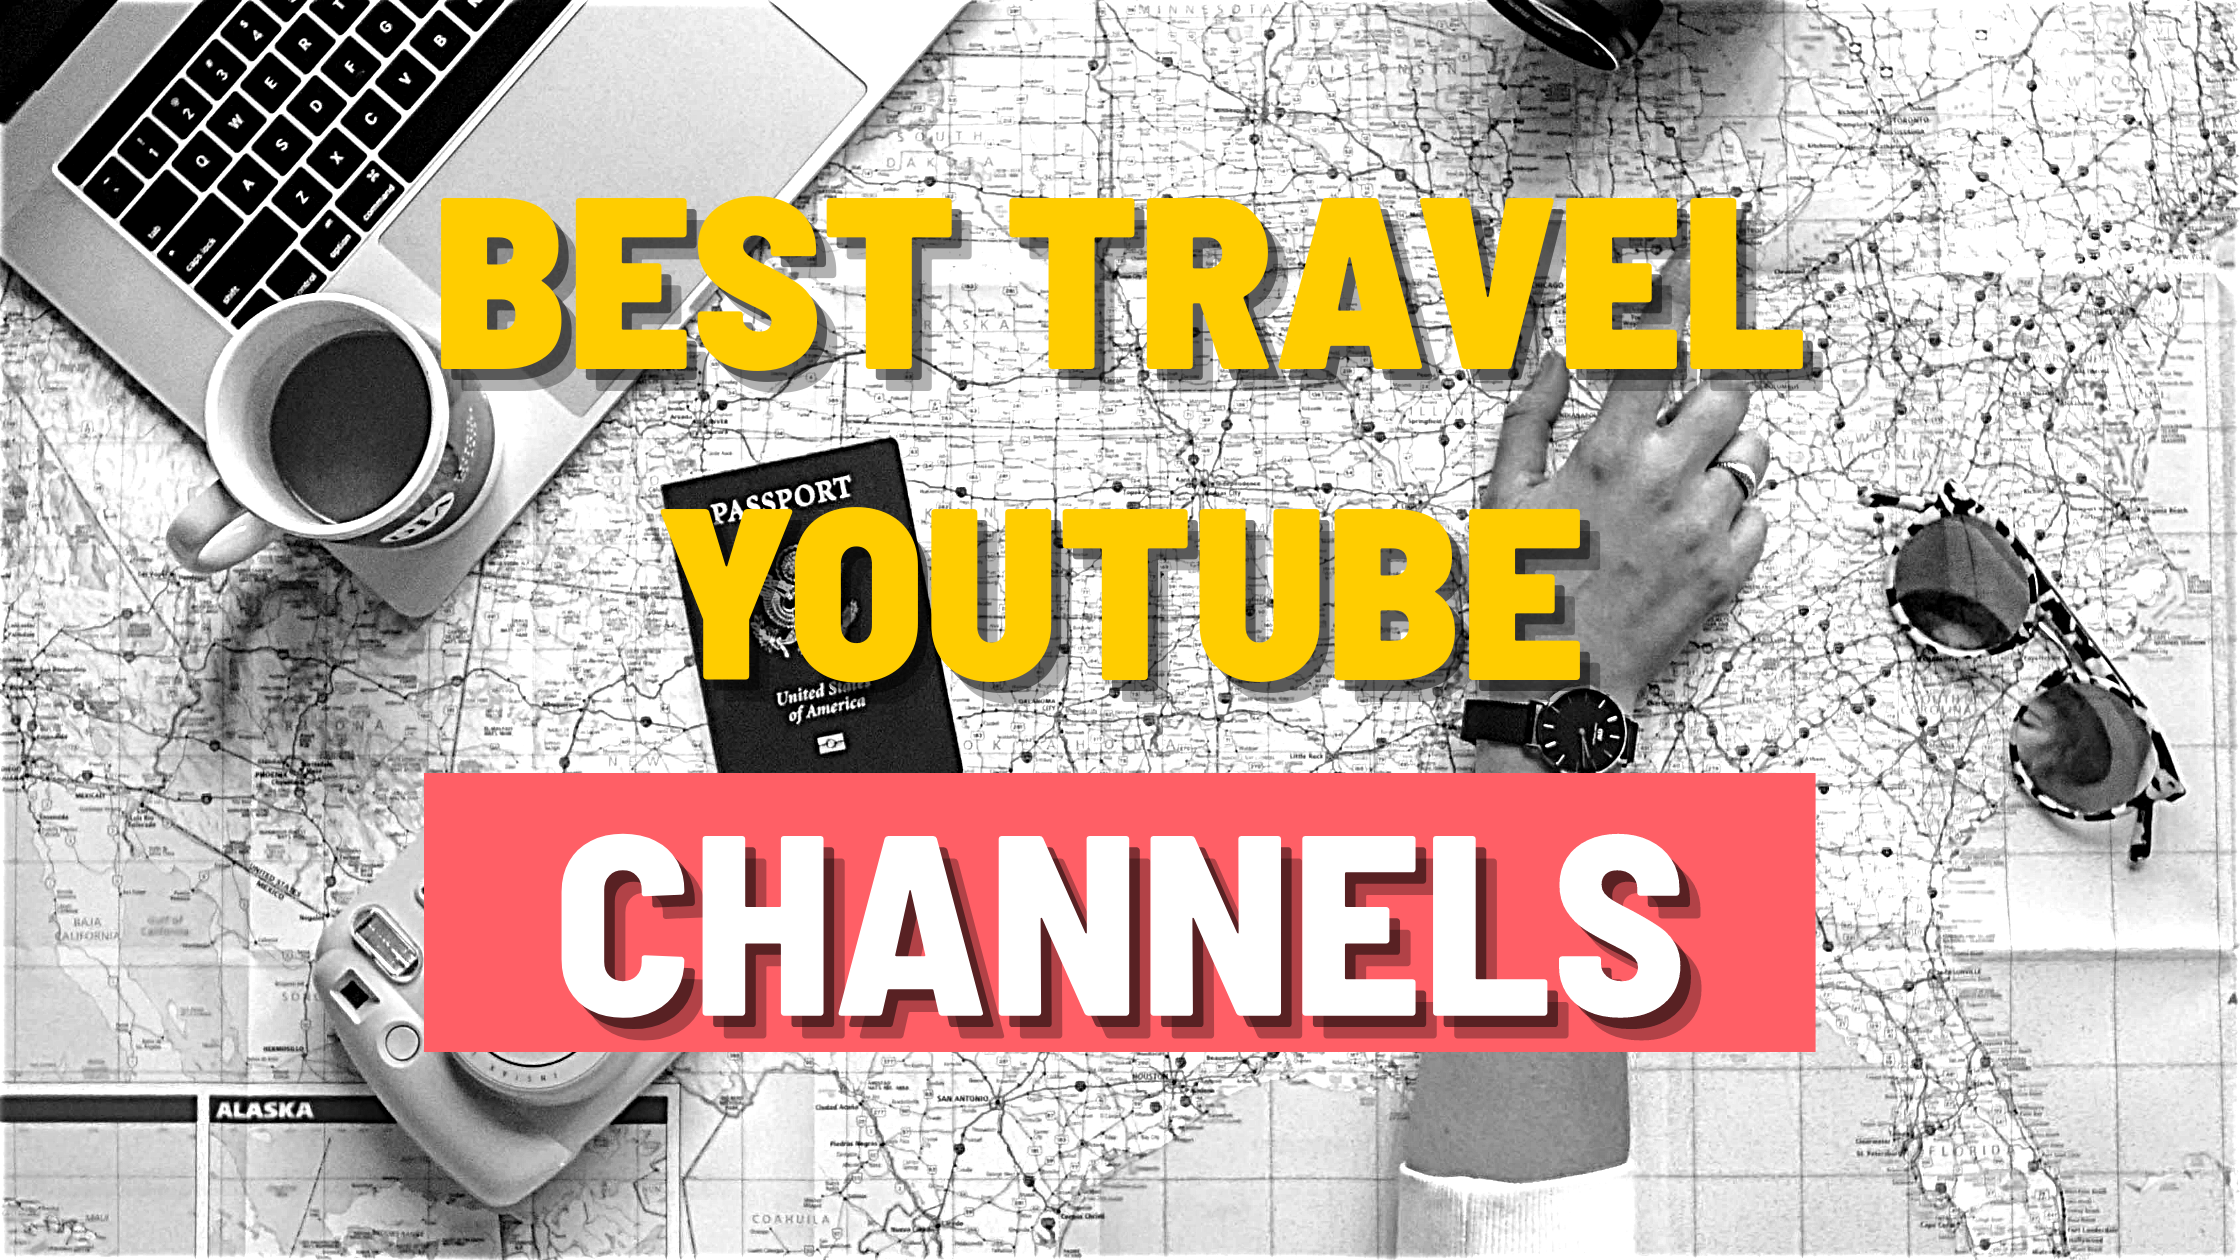 Best travel Youtube channels